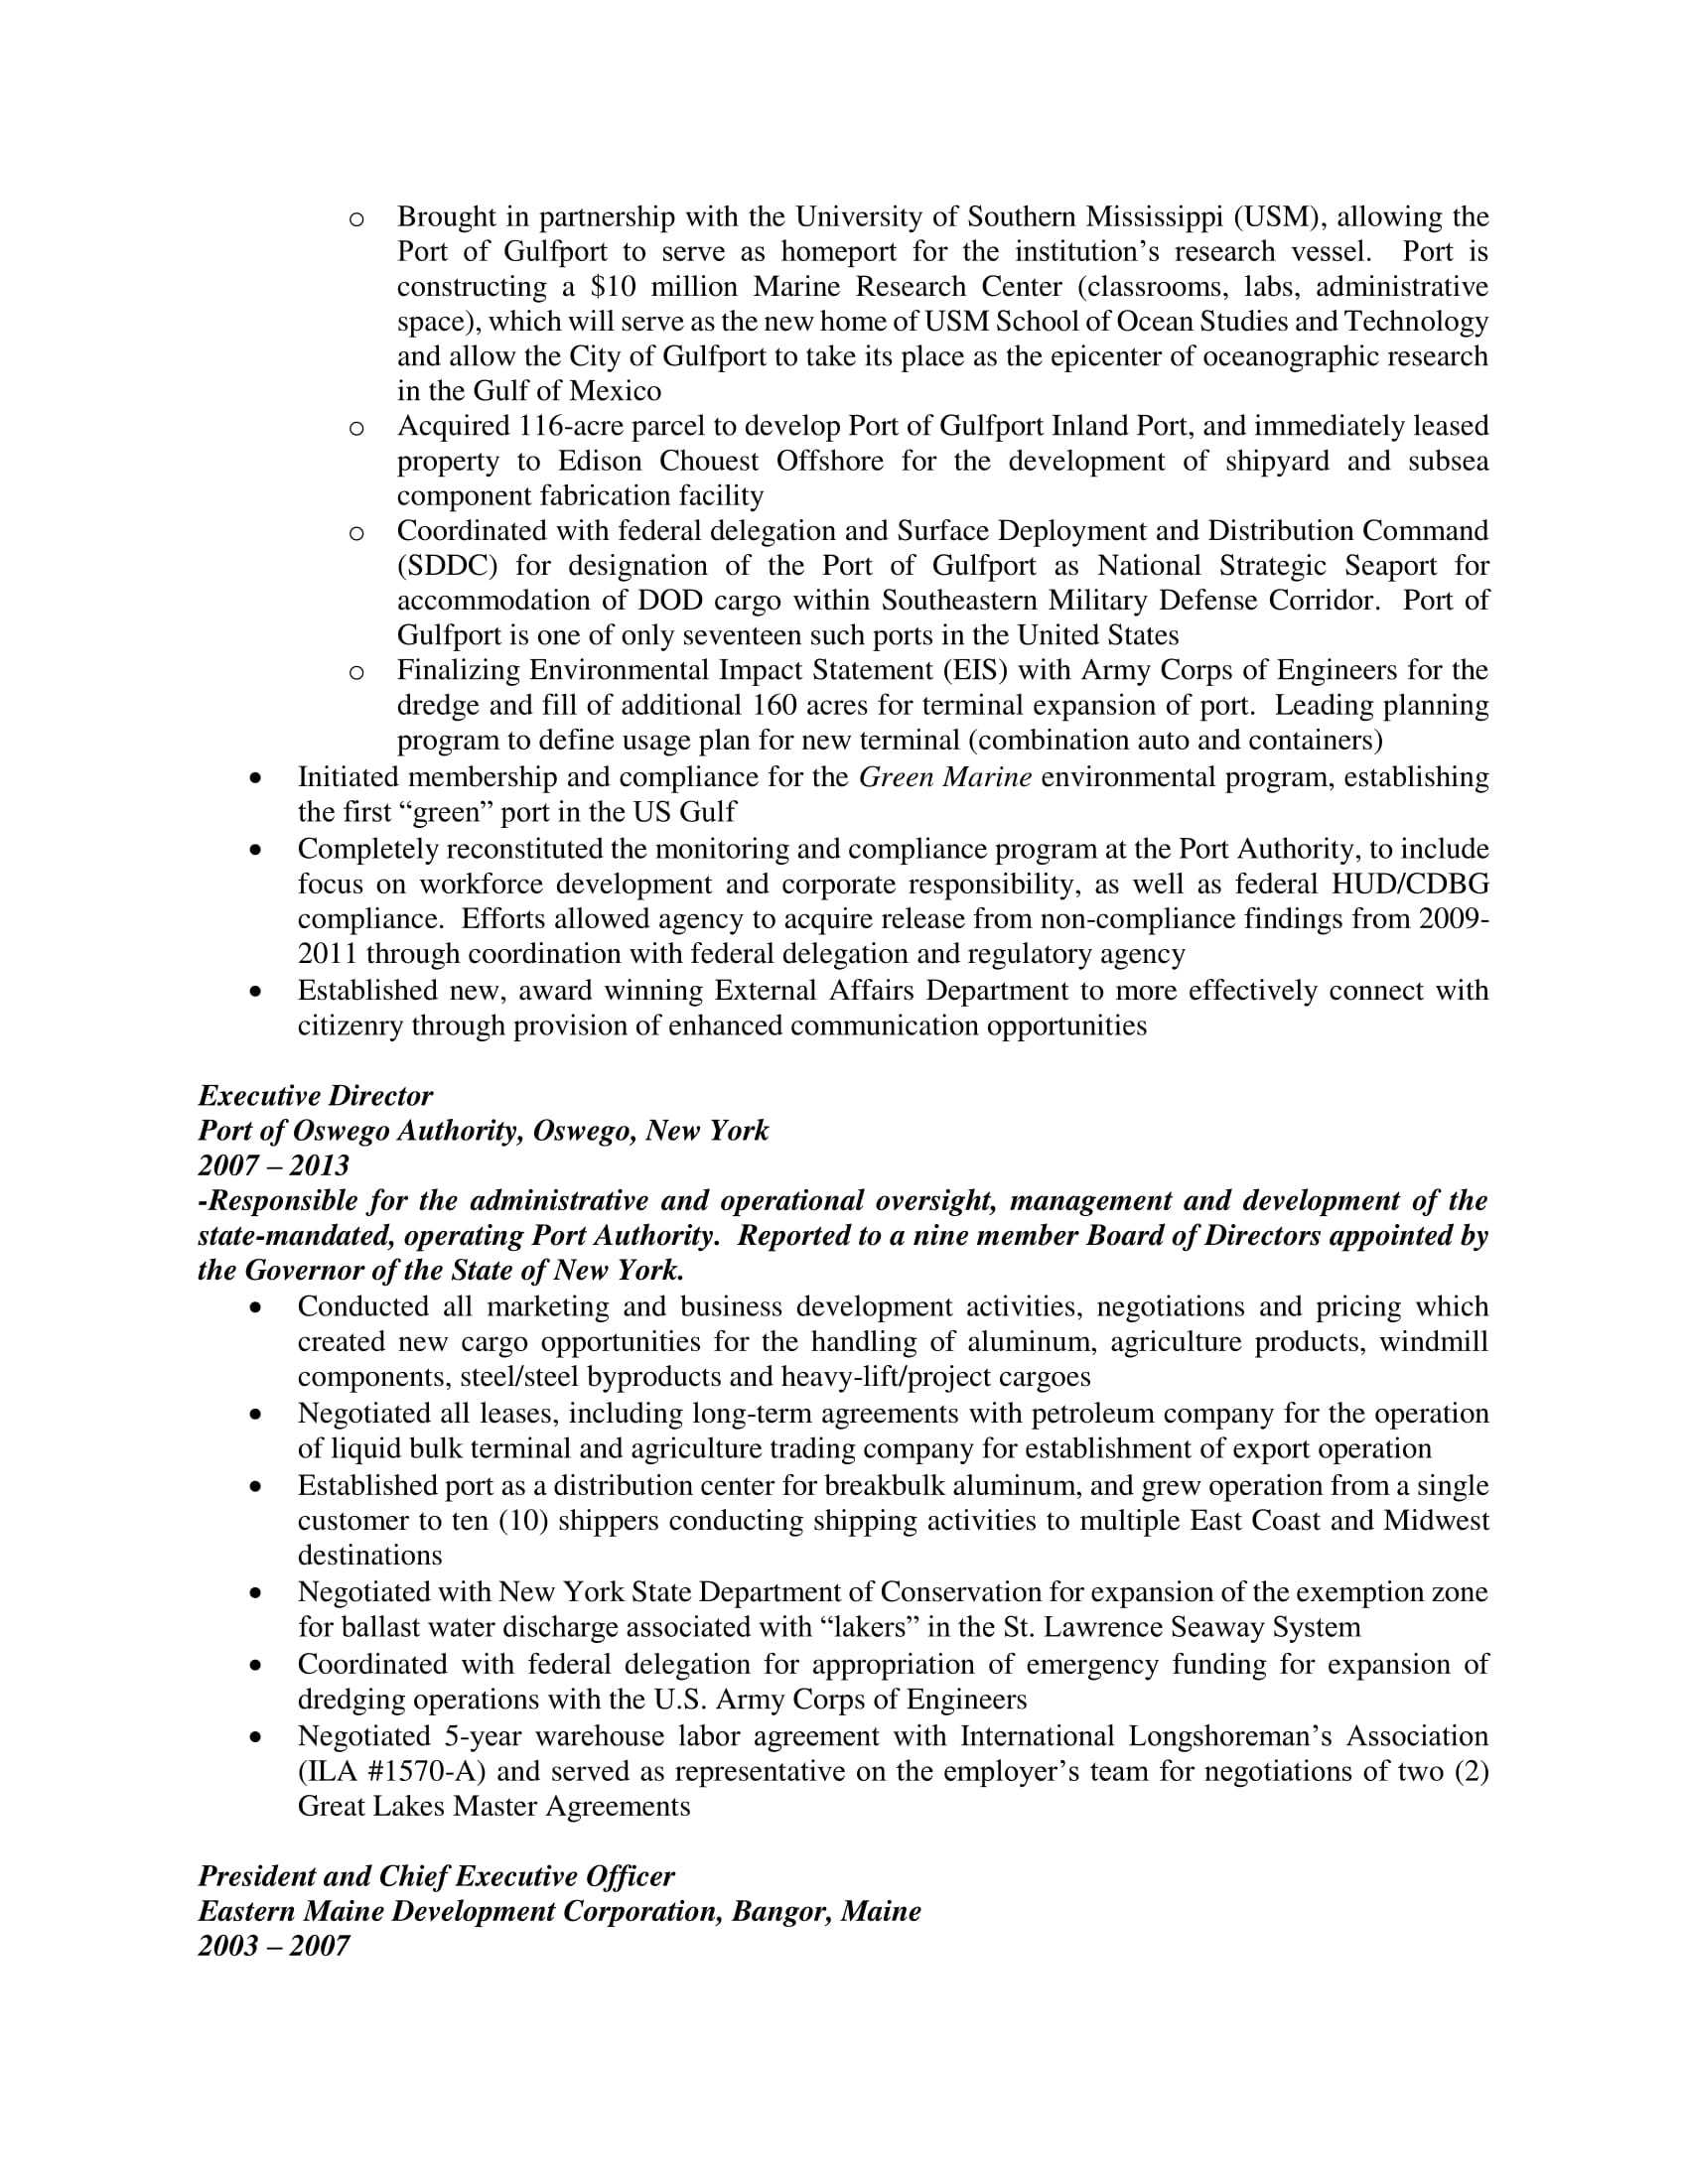 resume executive search and selection